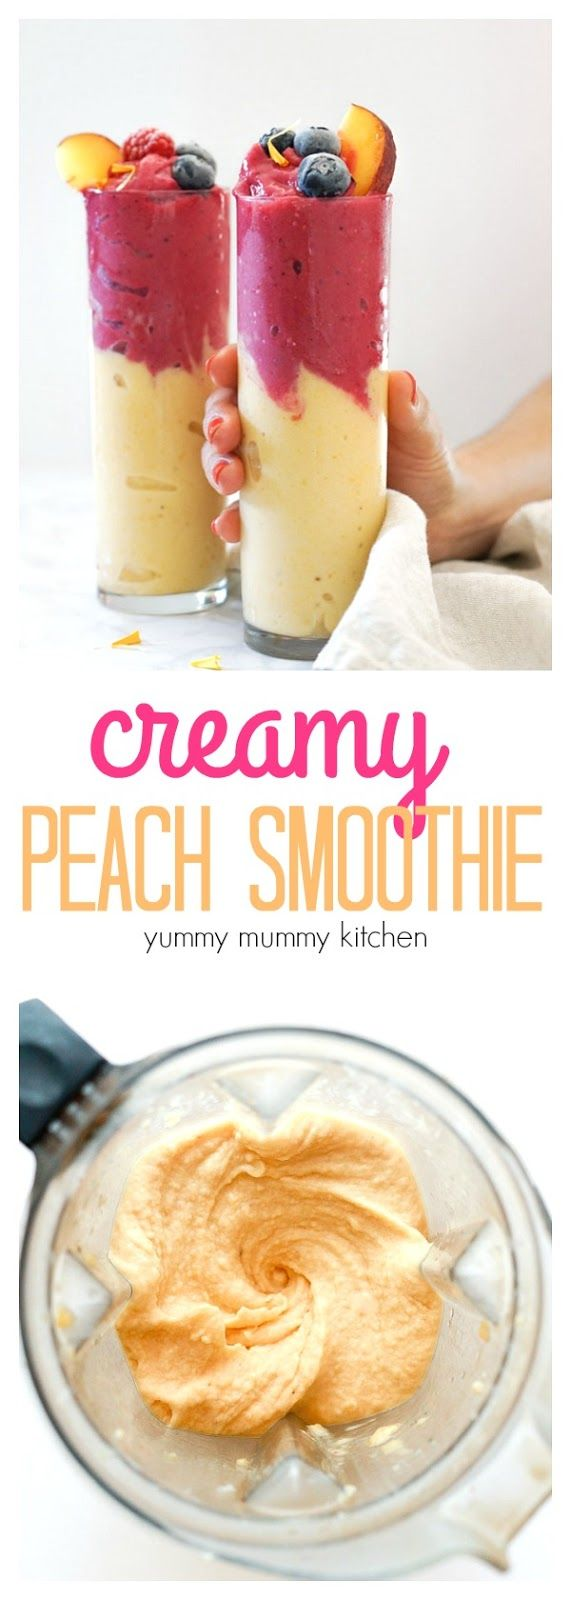 This is the best peach smoothie recipe! Made with frozen peaches, banana, and almondmilk yogurt, this vegan peach smoothie is ultra thick and creamy. Add a handful of strawberries for a pretty pink layer with an extra dose of antioxidants.